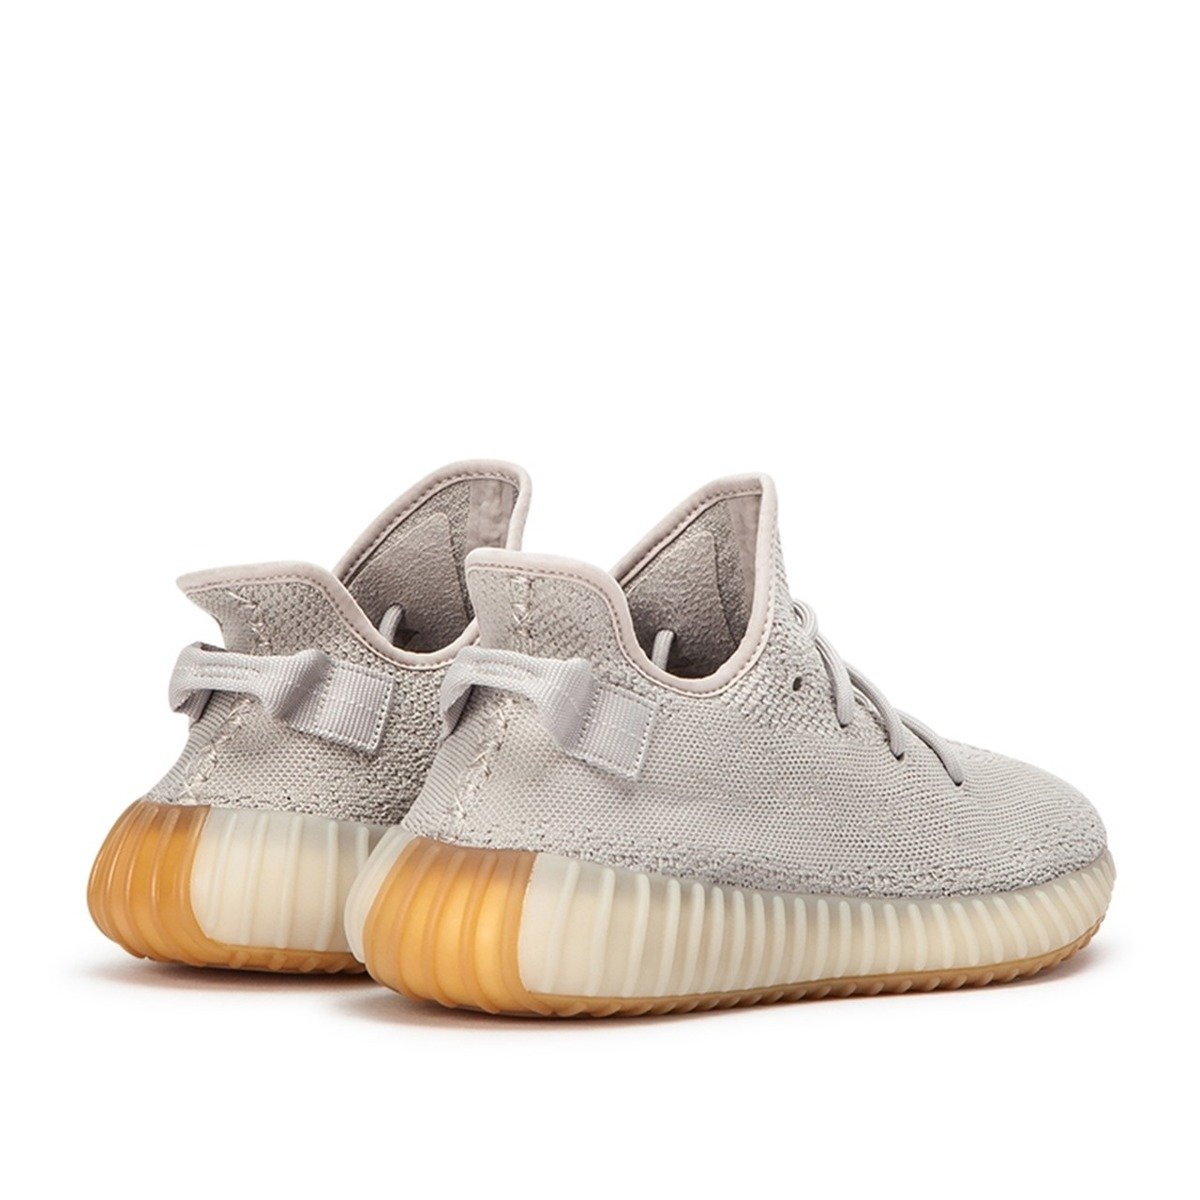 new products e7cbc 2083a Adidas Yeezy Boost 350 V2 Sesame Shoes F99710